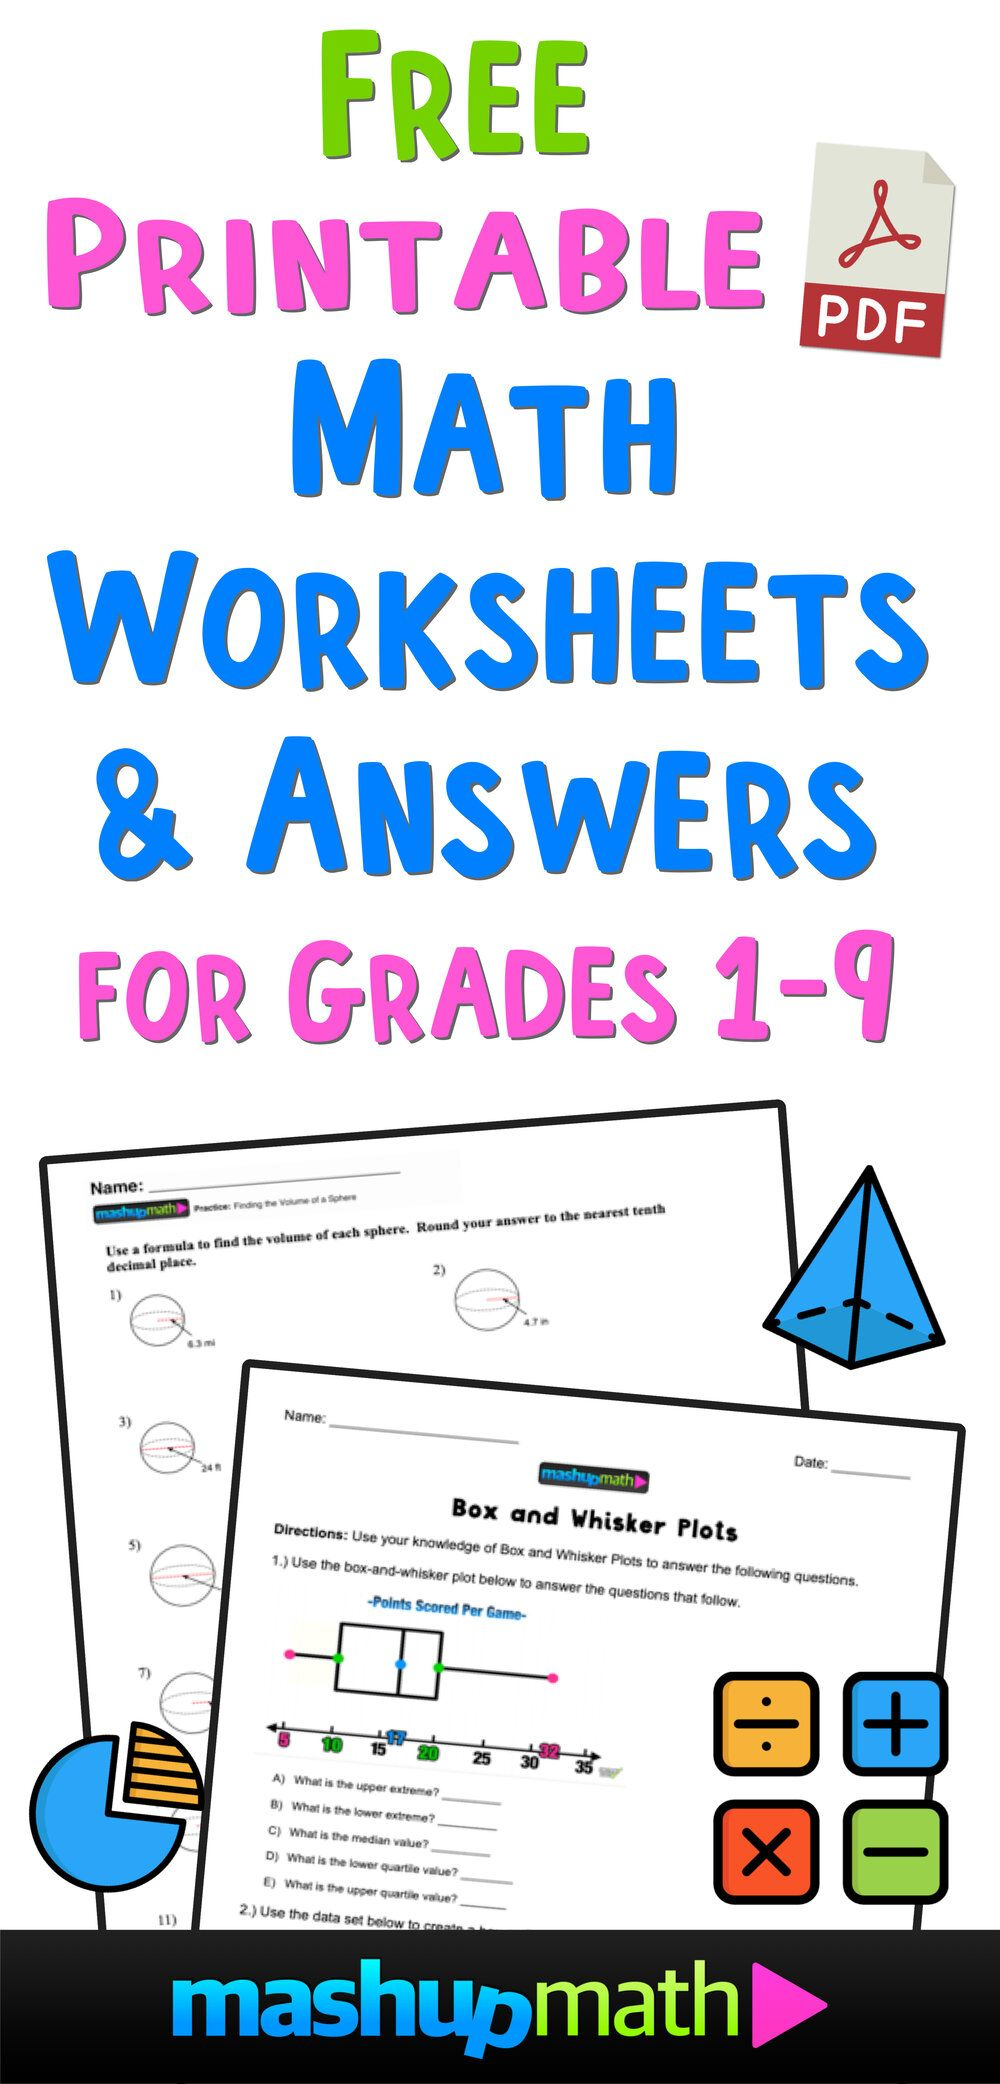 Free Math Worksheets Mashup Math Free Math Free Math Worksheets Math Worksheets